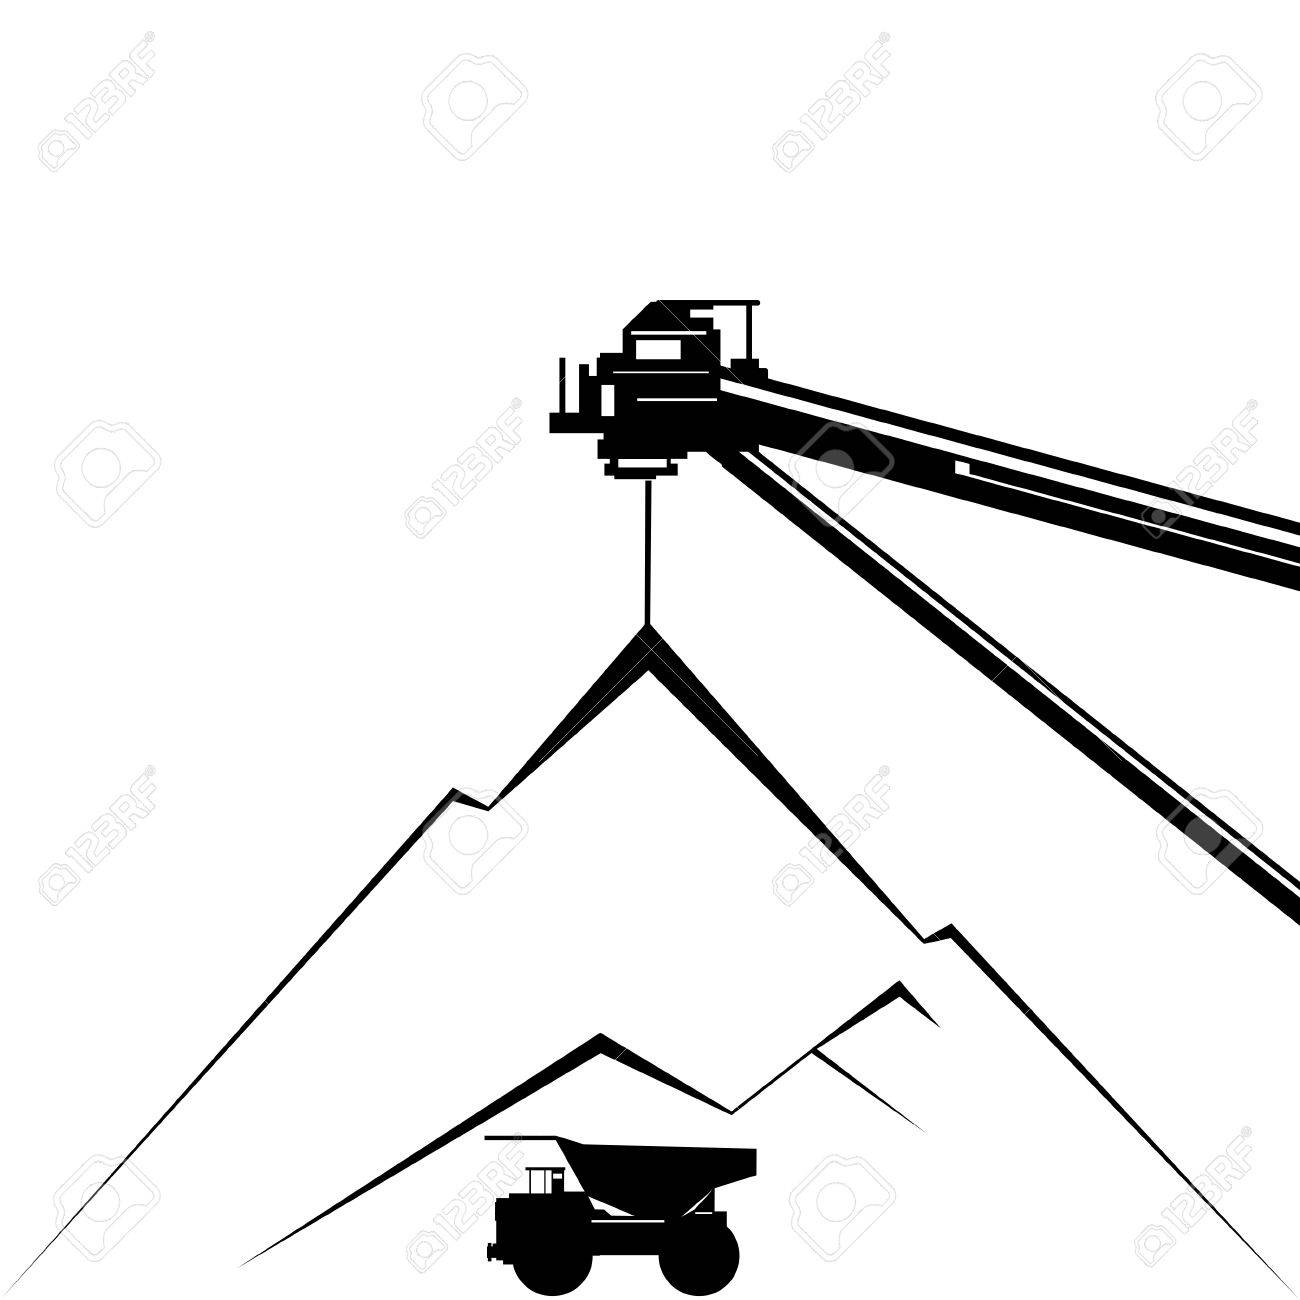 Coal industry  Coal mining  Illustration on white background Stock Vector - 17993001